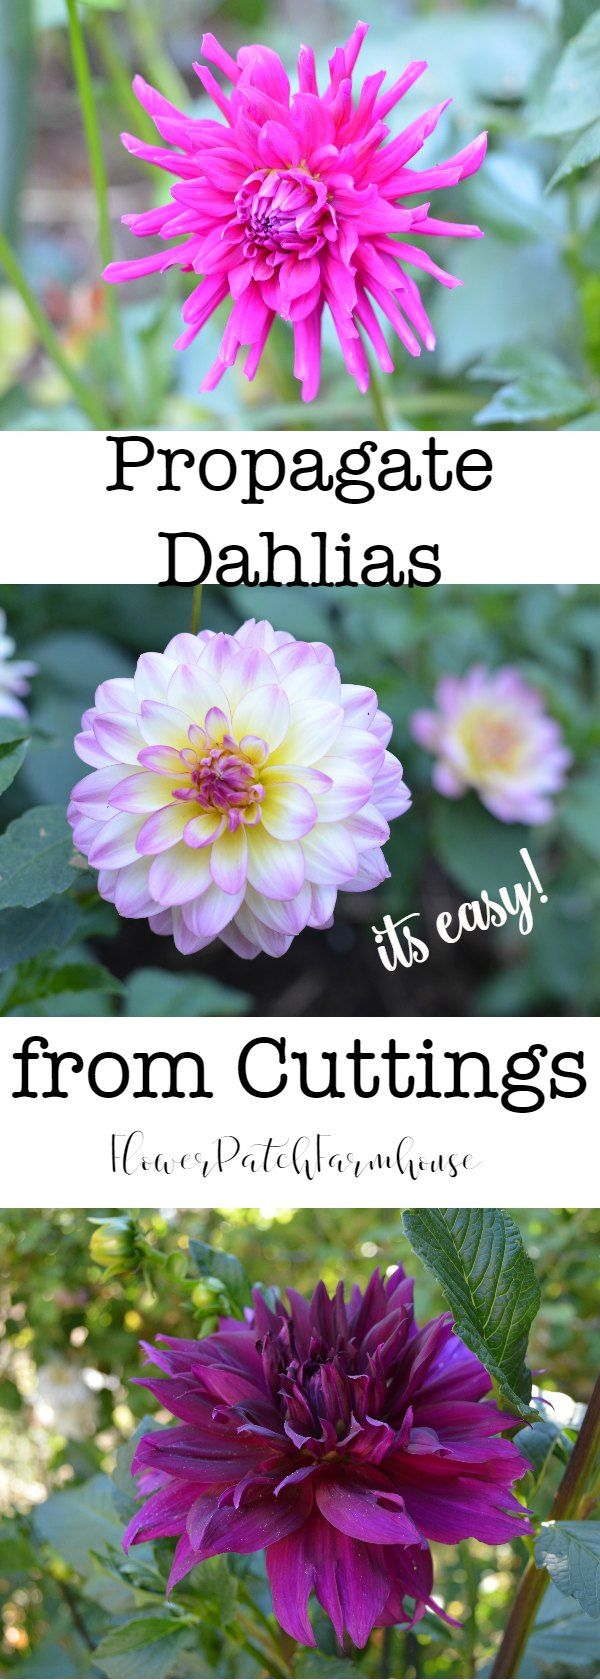 Propagate Dahlias from Cuttings.  This is so easy and you can get tons more dahlias and still get plenty of blooms from the mother plant.  I find it easier than dividing the tubers but you can do that too.   via @FlowerpatchPam